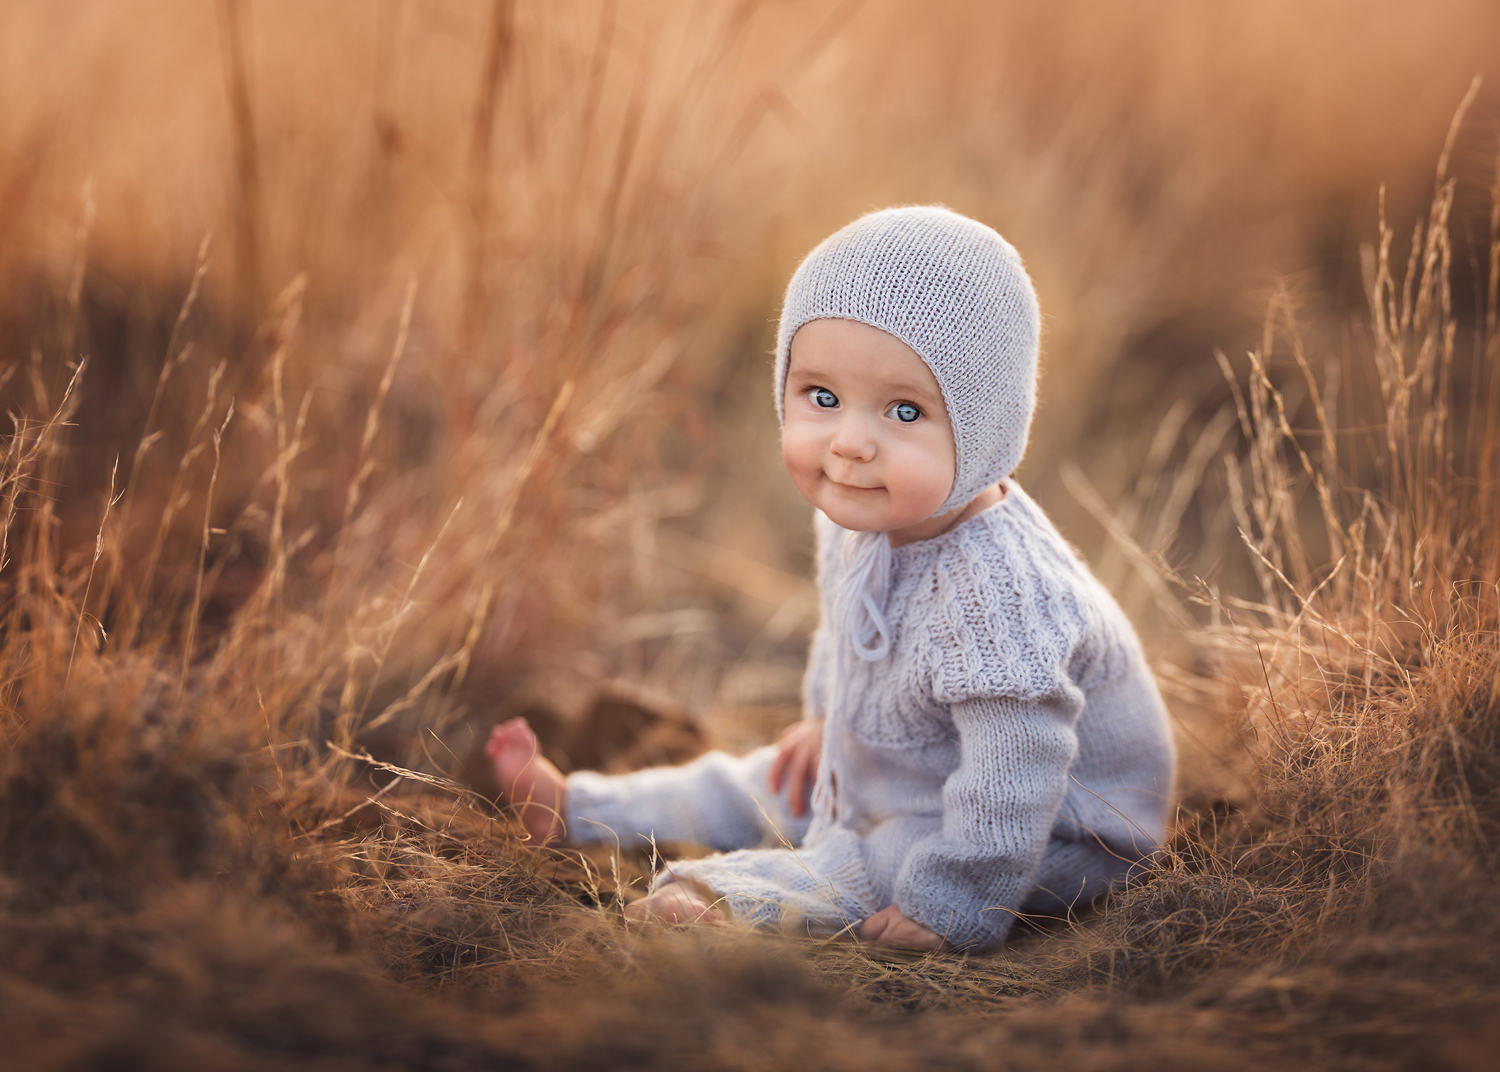 Las vegas baby and child photography